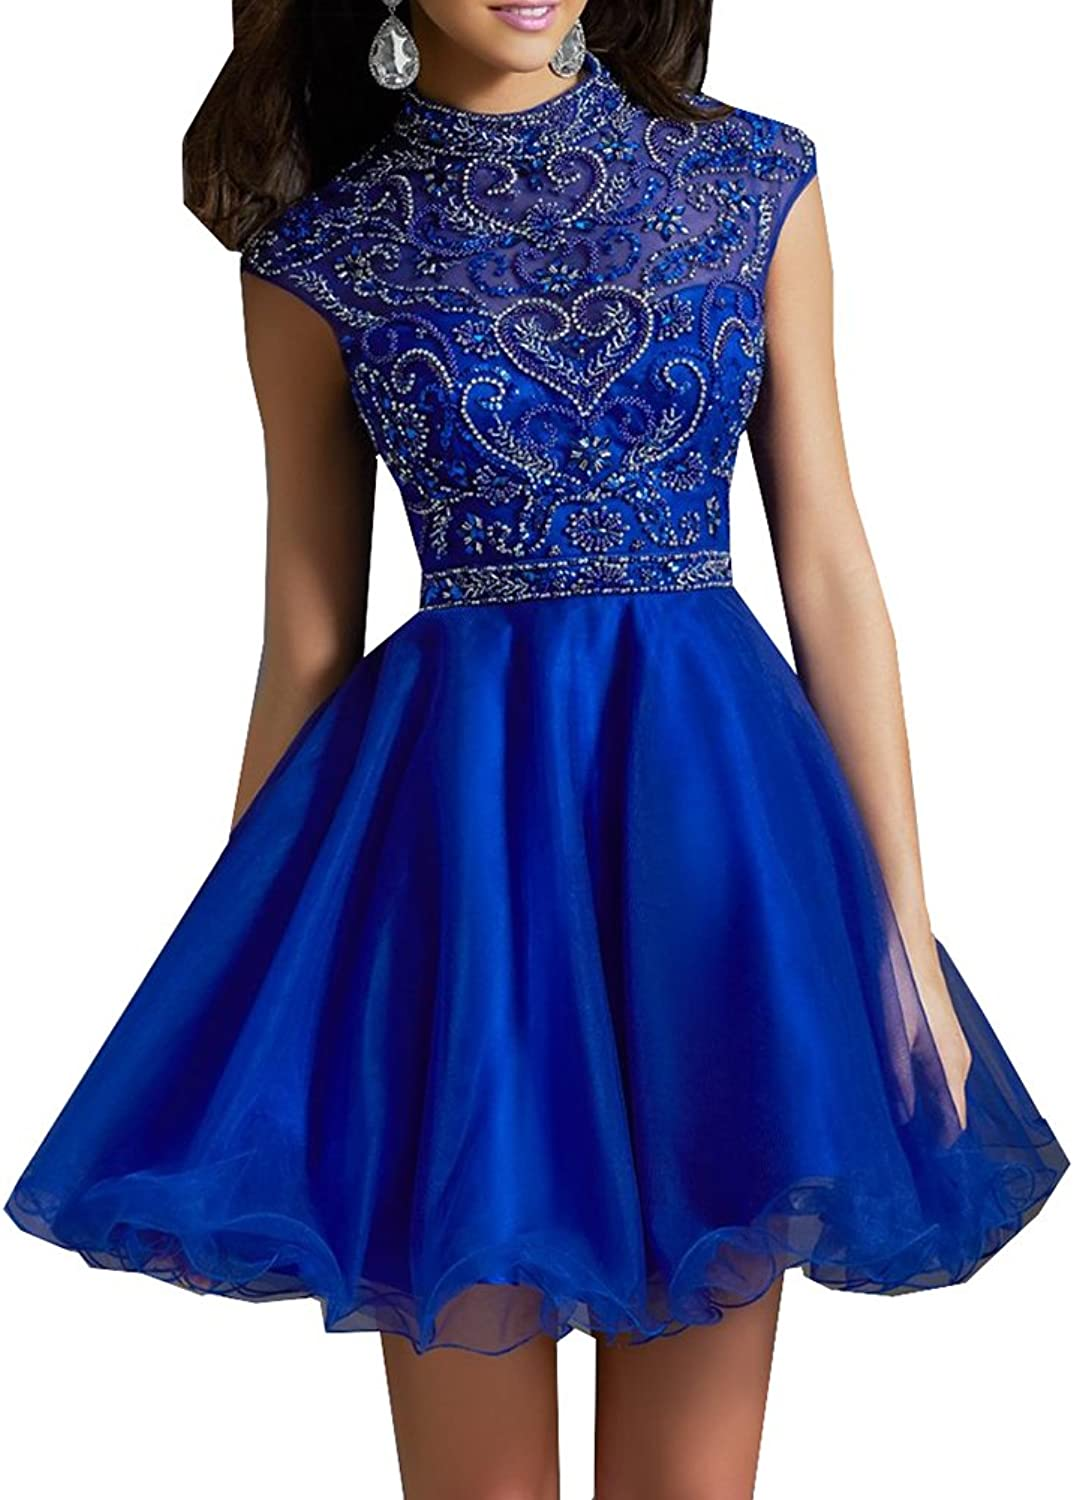 Lavaring Women's Tulle Jewel Hollow Mini Aline Homecoming Dress with Beading